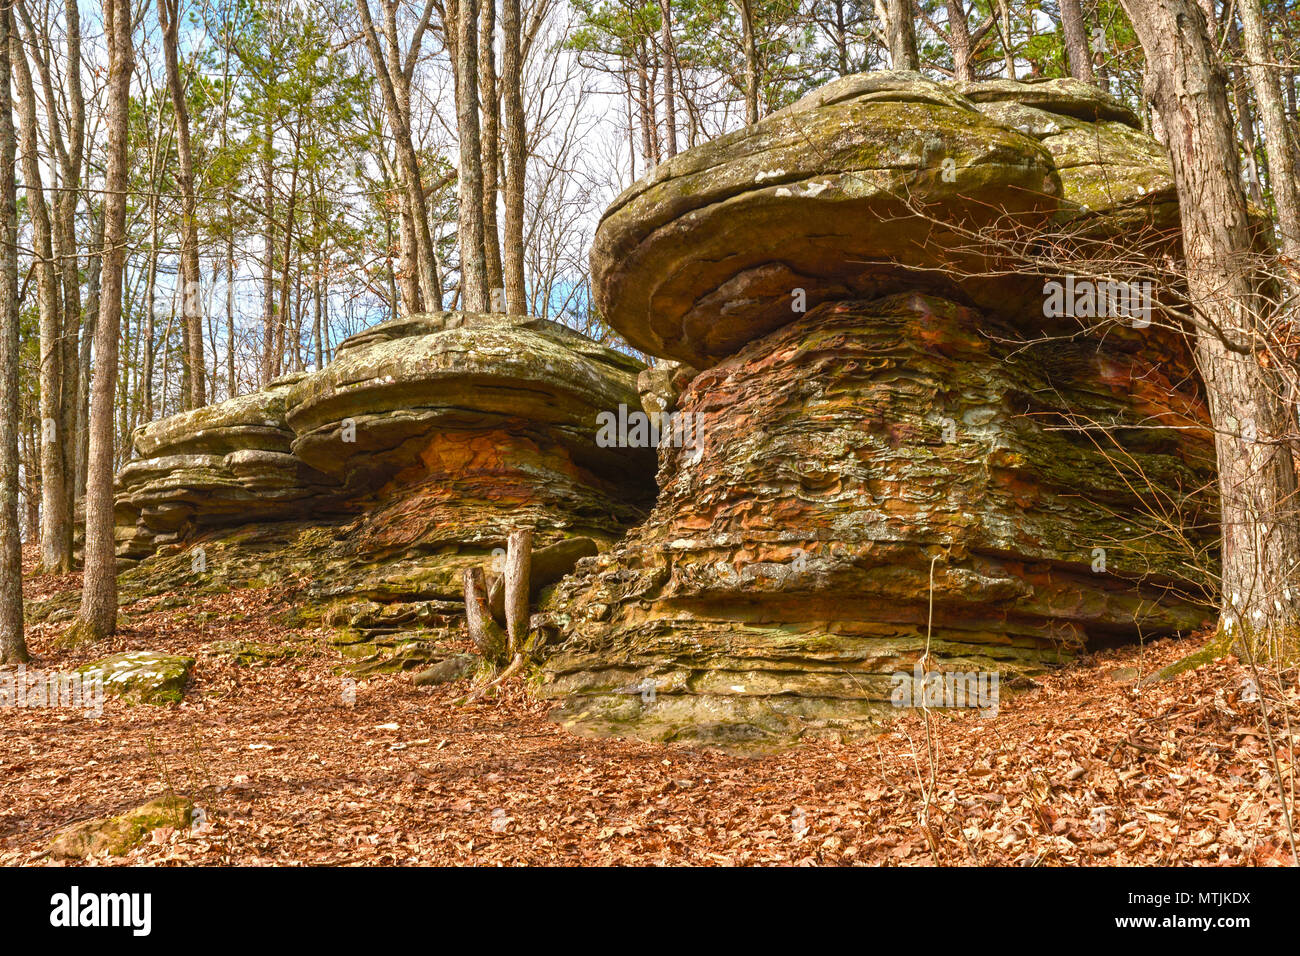 Colorful Rocks in the Forest in the Garden of the Gods in Shawnee National Forest in Illinois - Stock Image